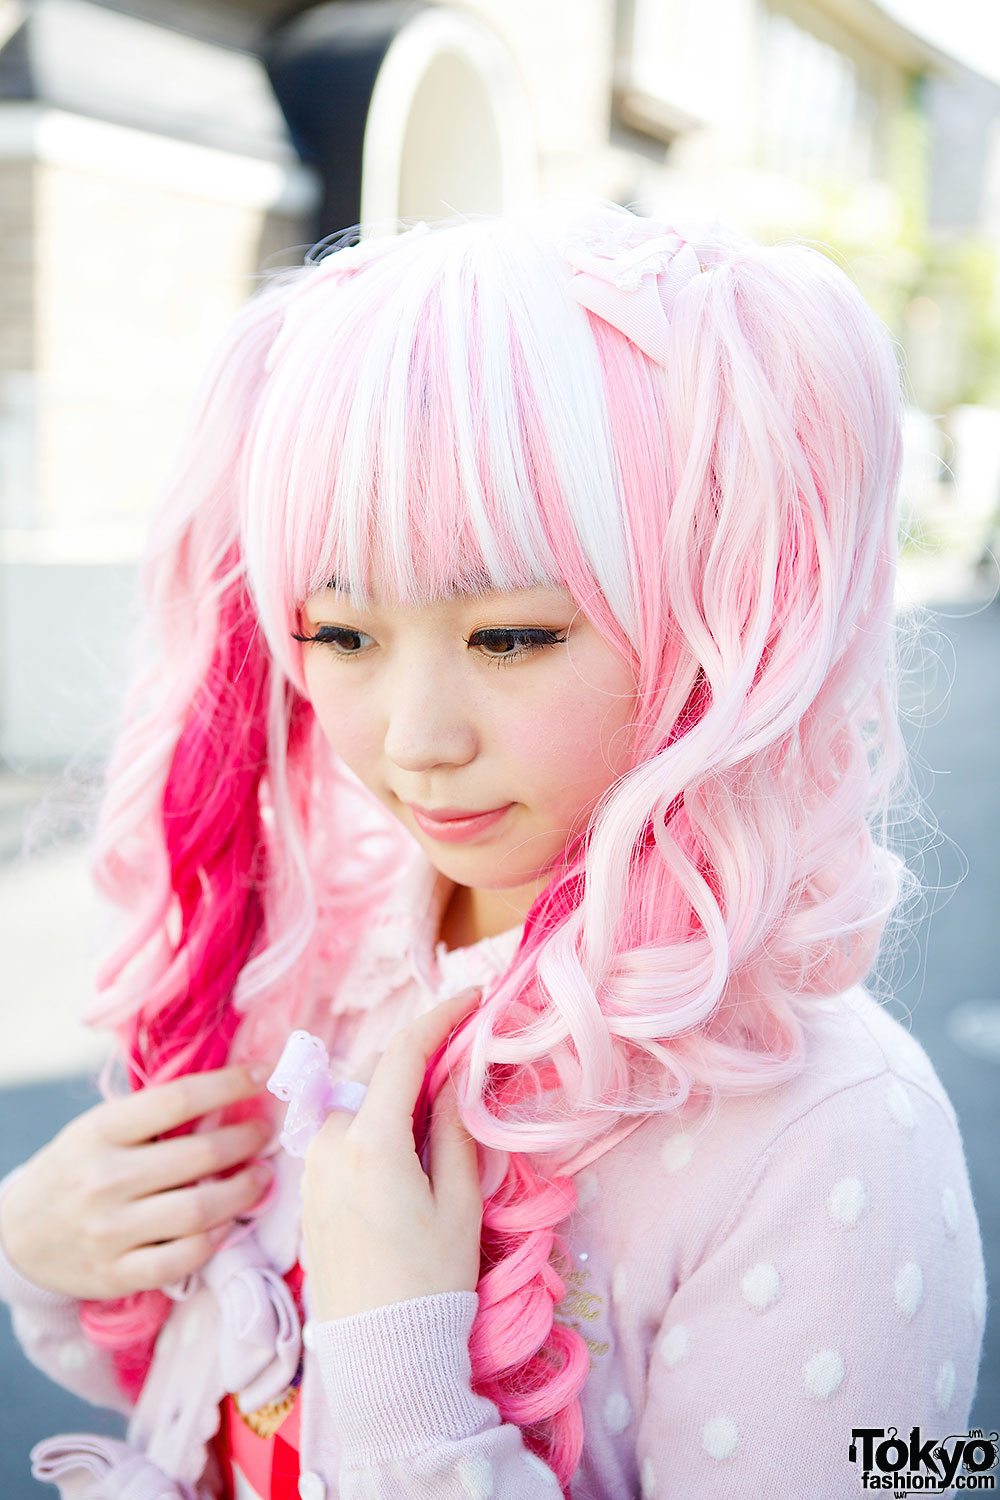 kawaii pink twintails amp baby the stars shine bright